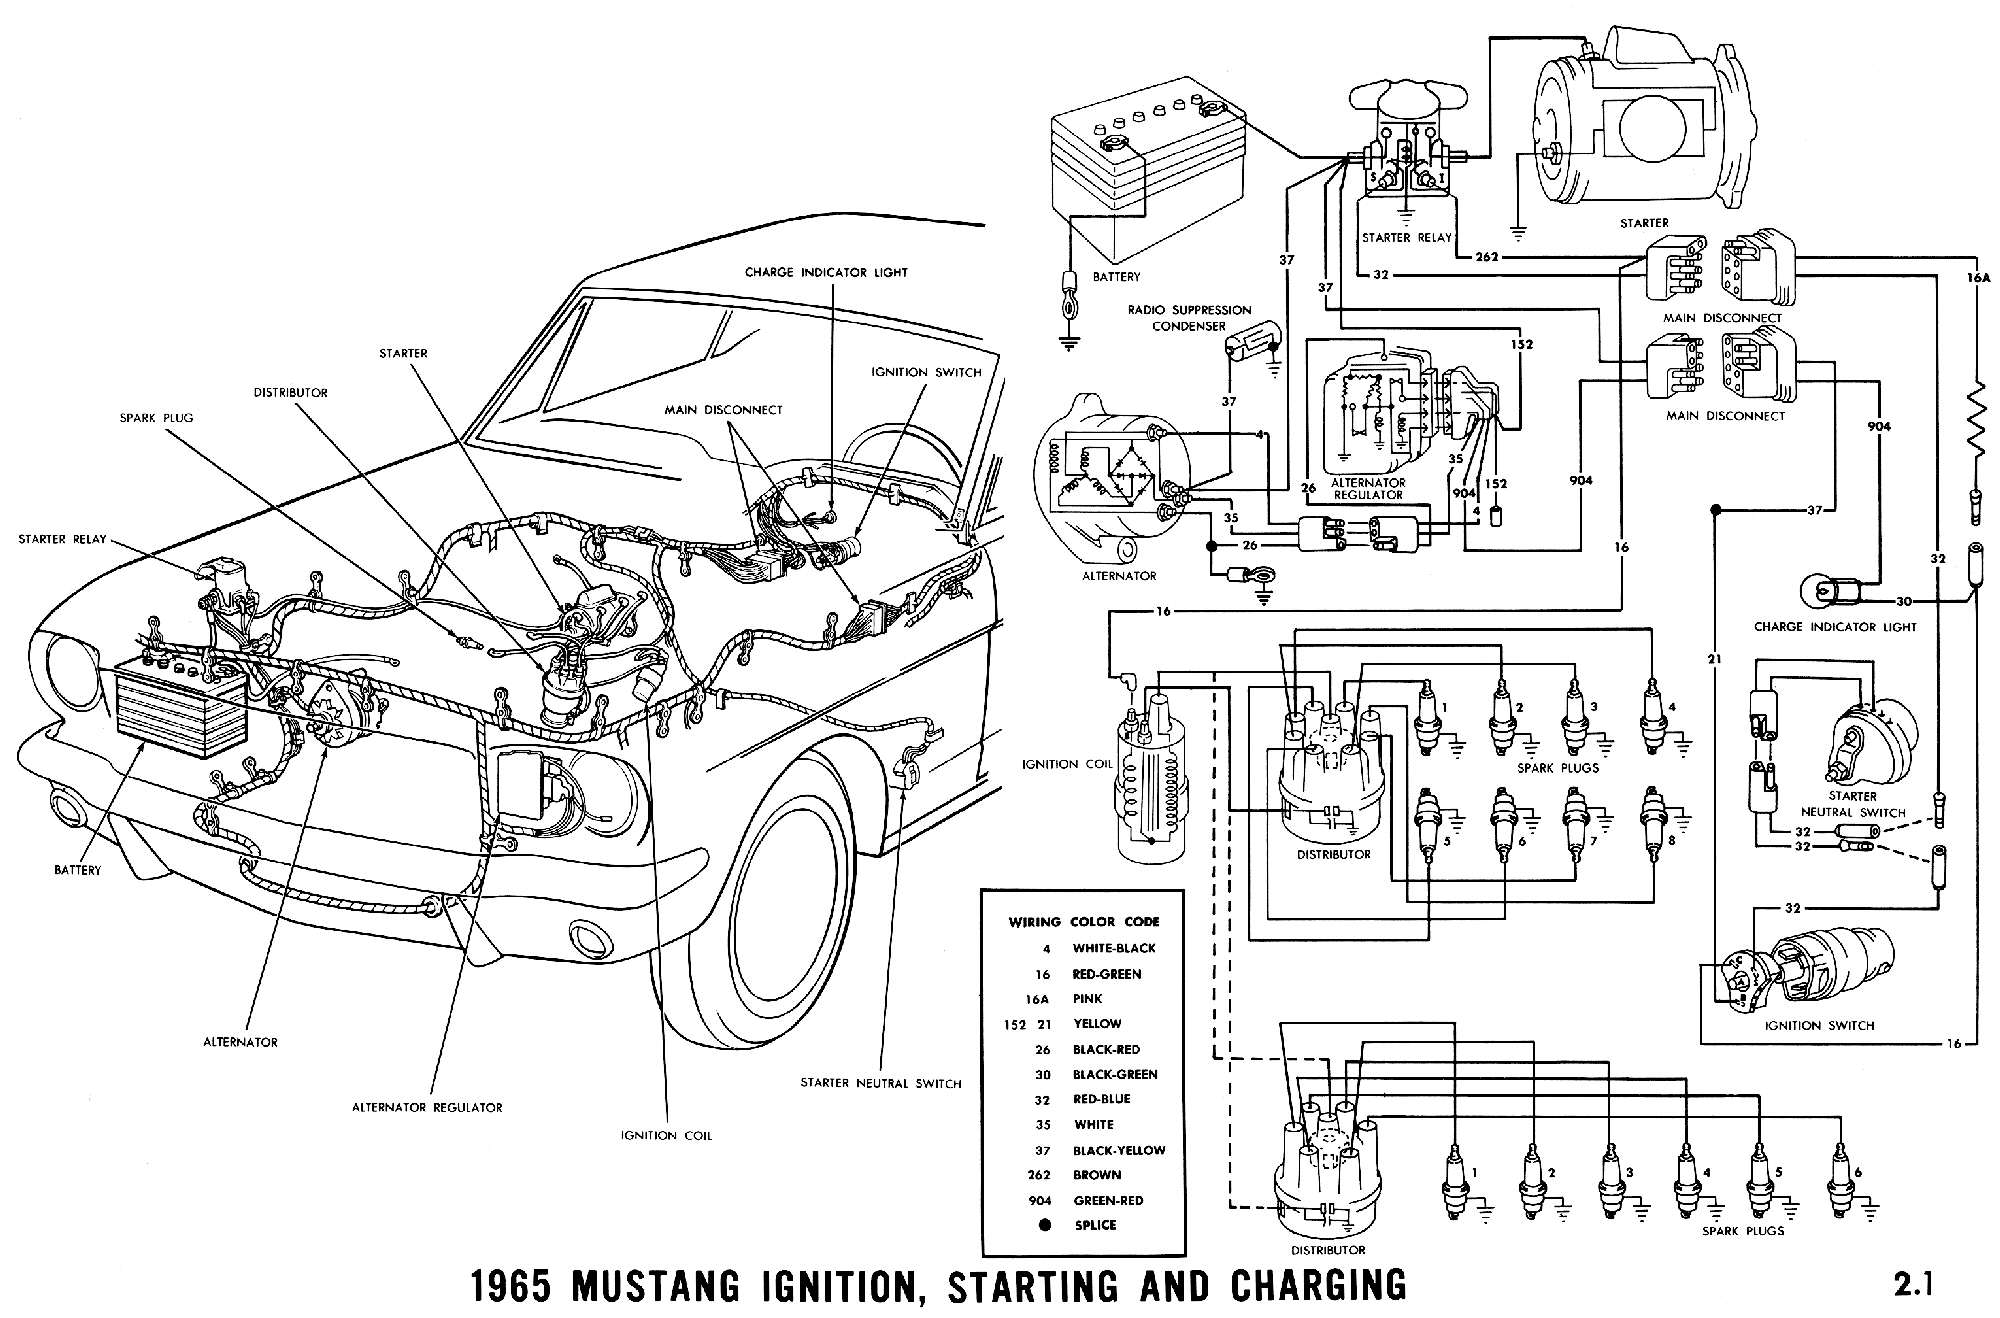 1969 Mustang Fuse Box Location - Wiring Diagram Data on 1968 camaro ignition wiring, 1967 mustang ignition wiring, 1968 mustang ignition wiring, 1965 mustang ignition wiring, 1957 chevy ignition wiring,